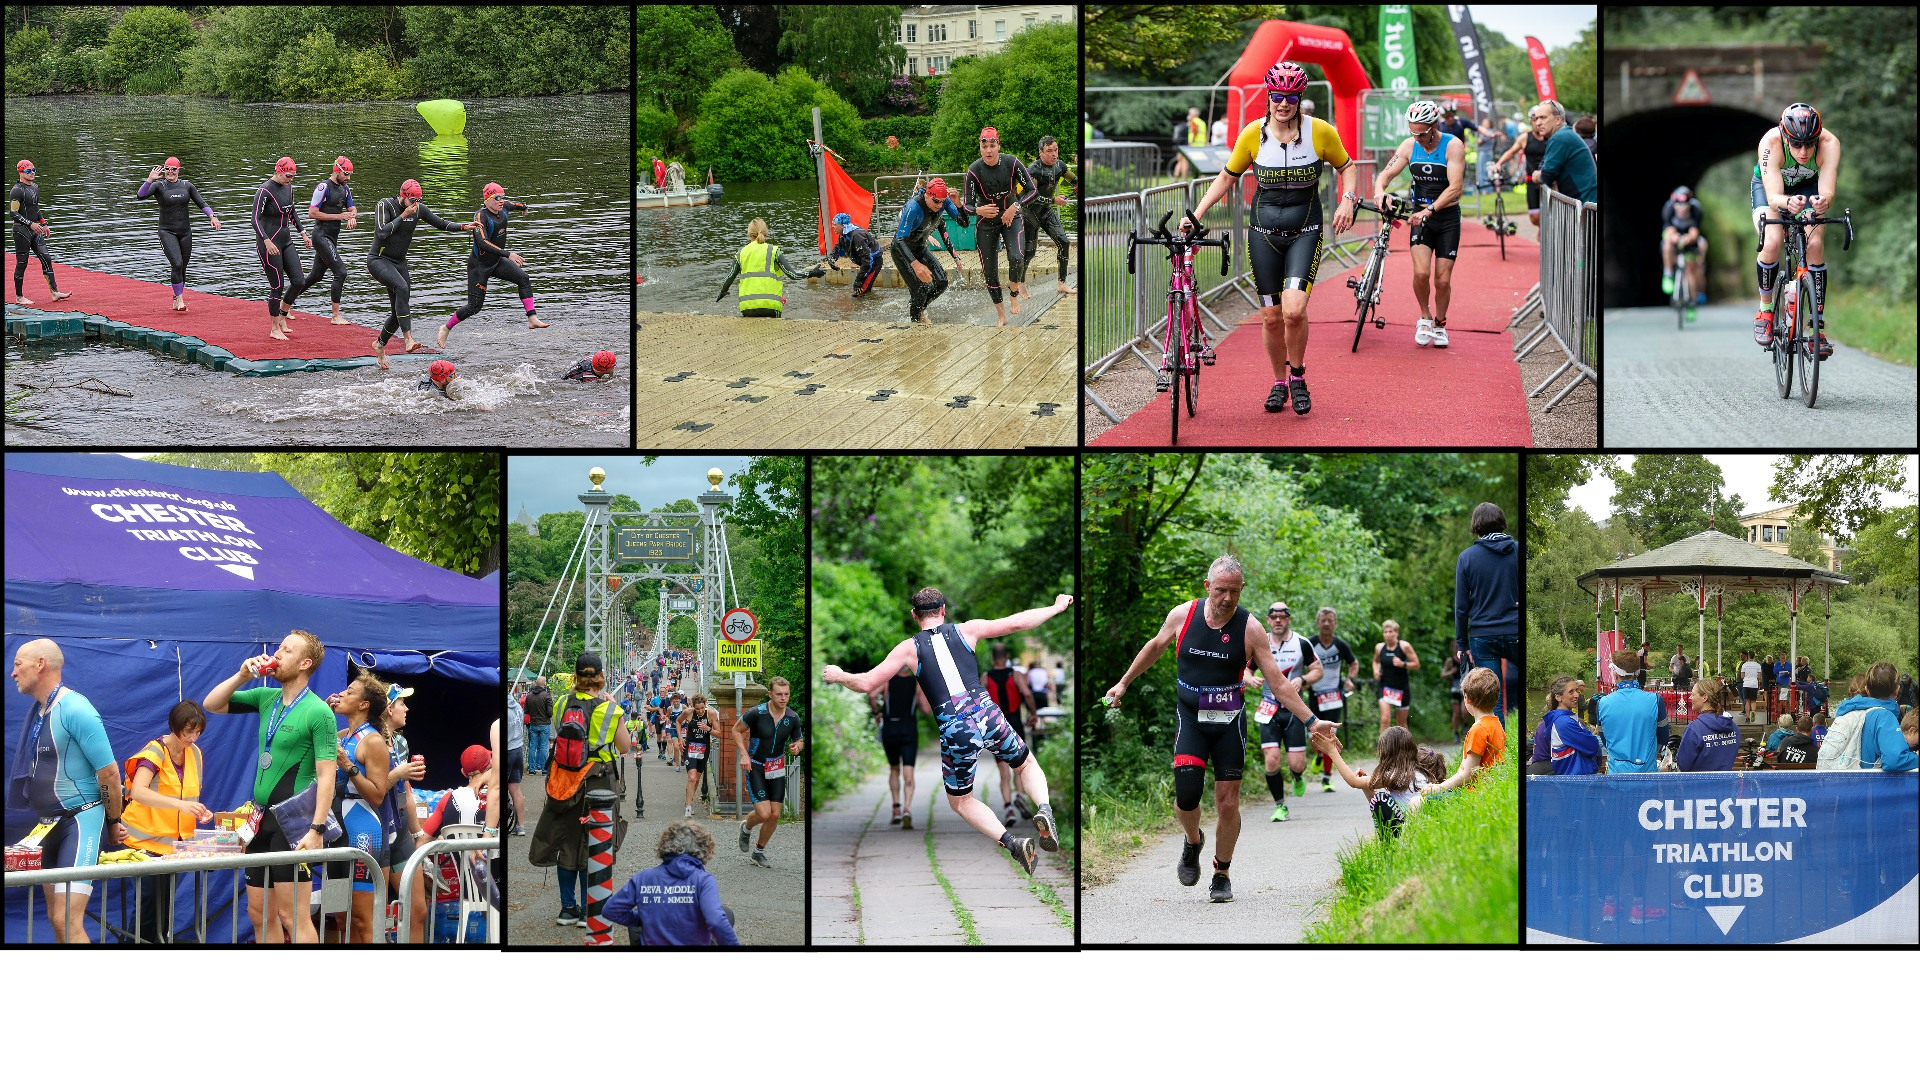 Chester Triathlon 2019 collage